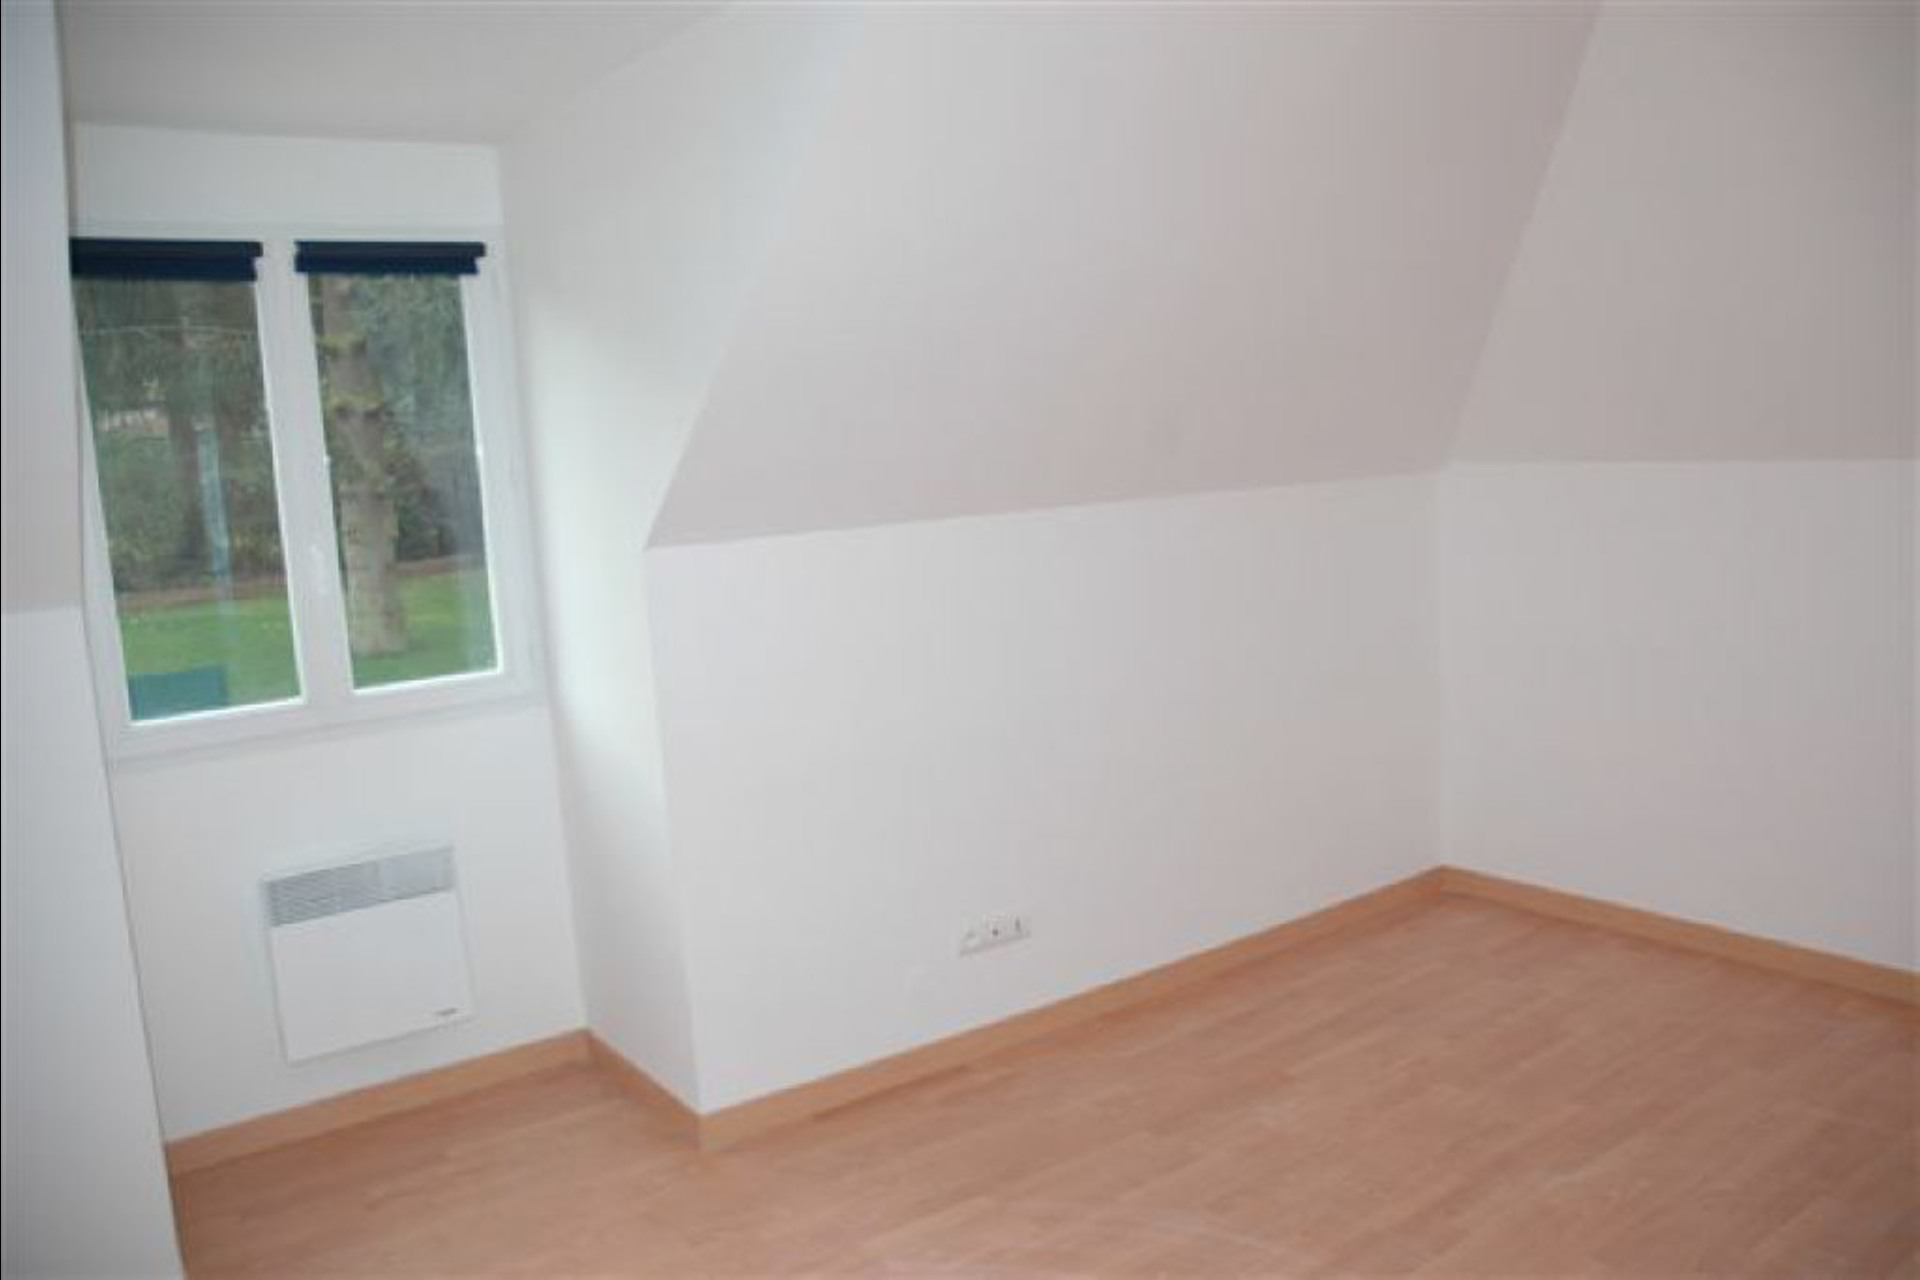 image 5 - House For rent - 7 rooms